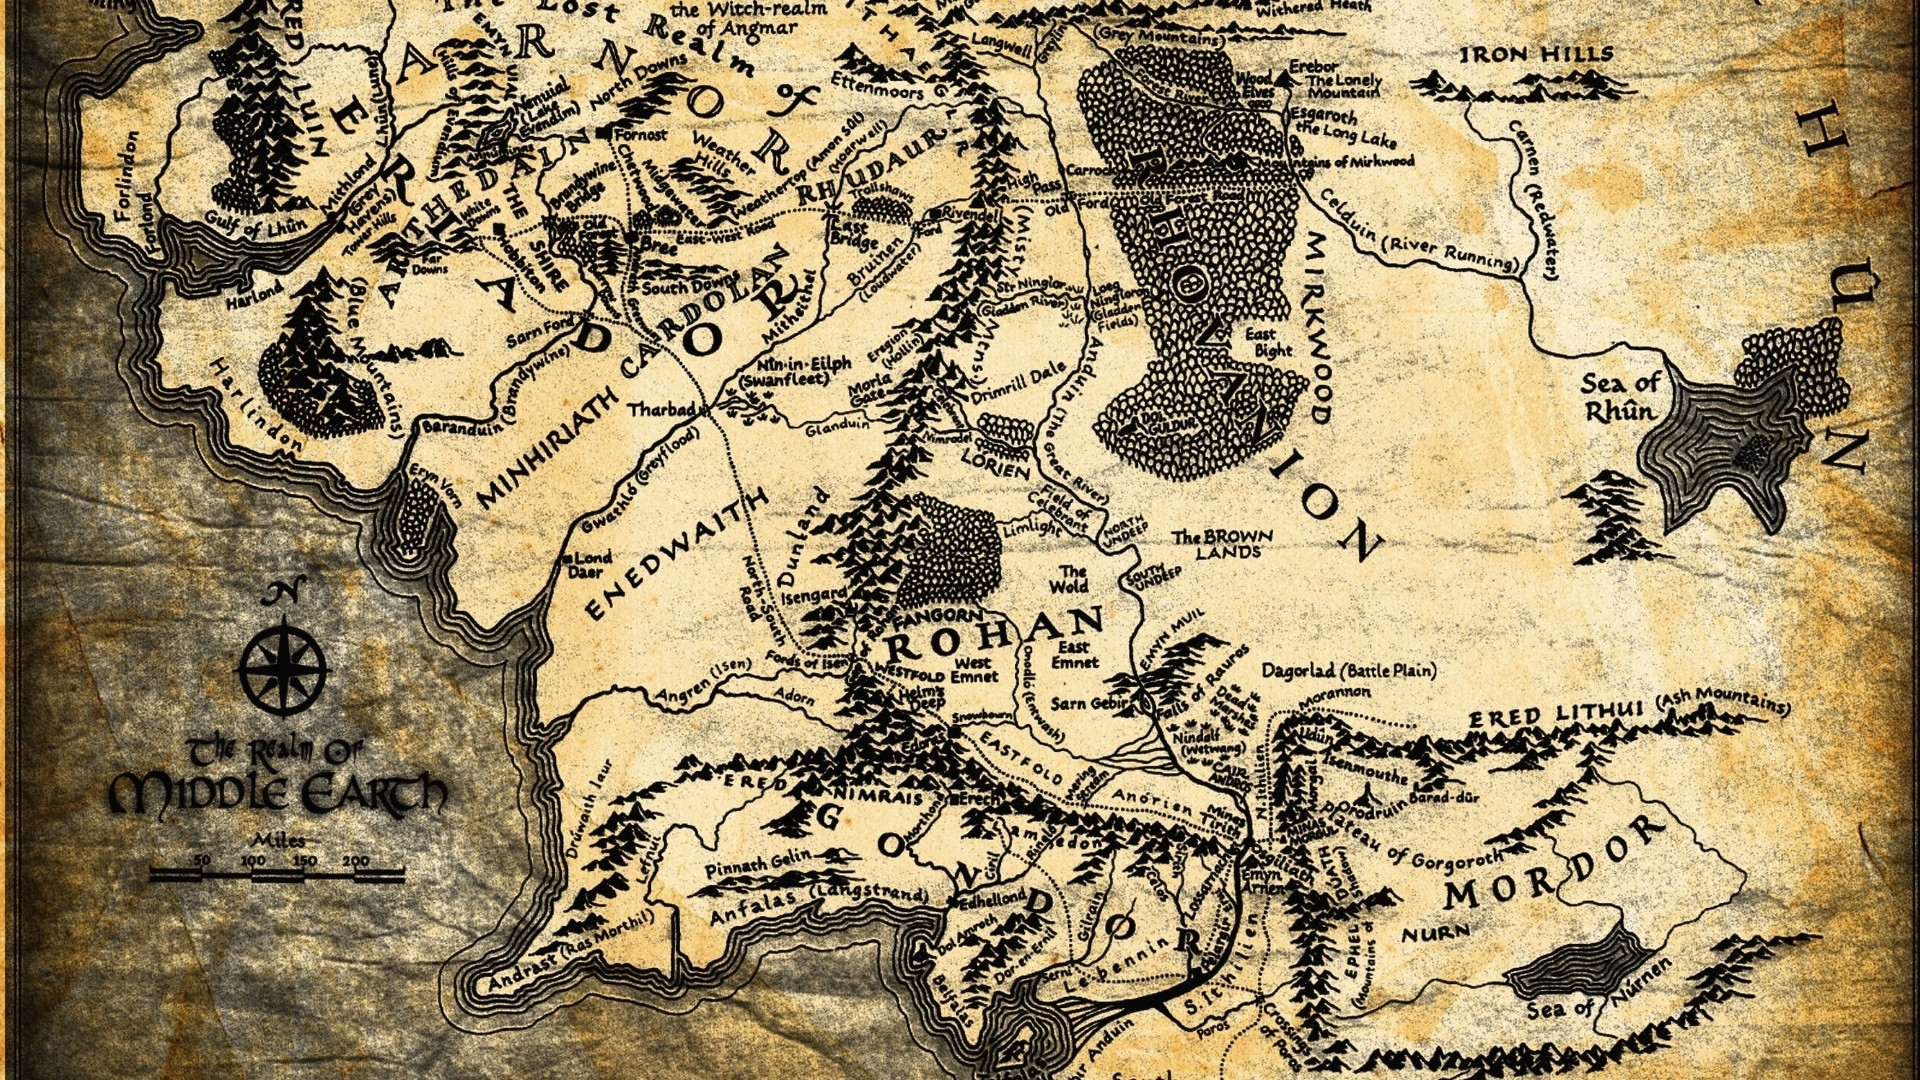 wallpaper : 1920x1080 px, map, middle earth, the lord of the rings